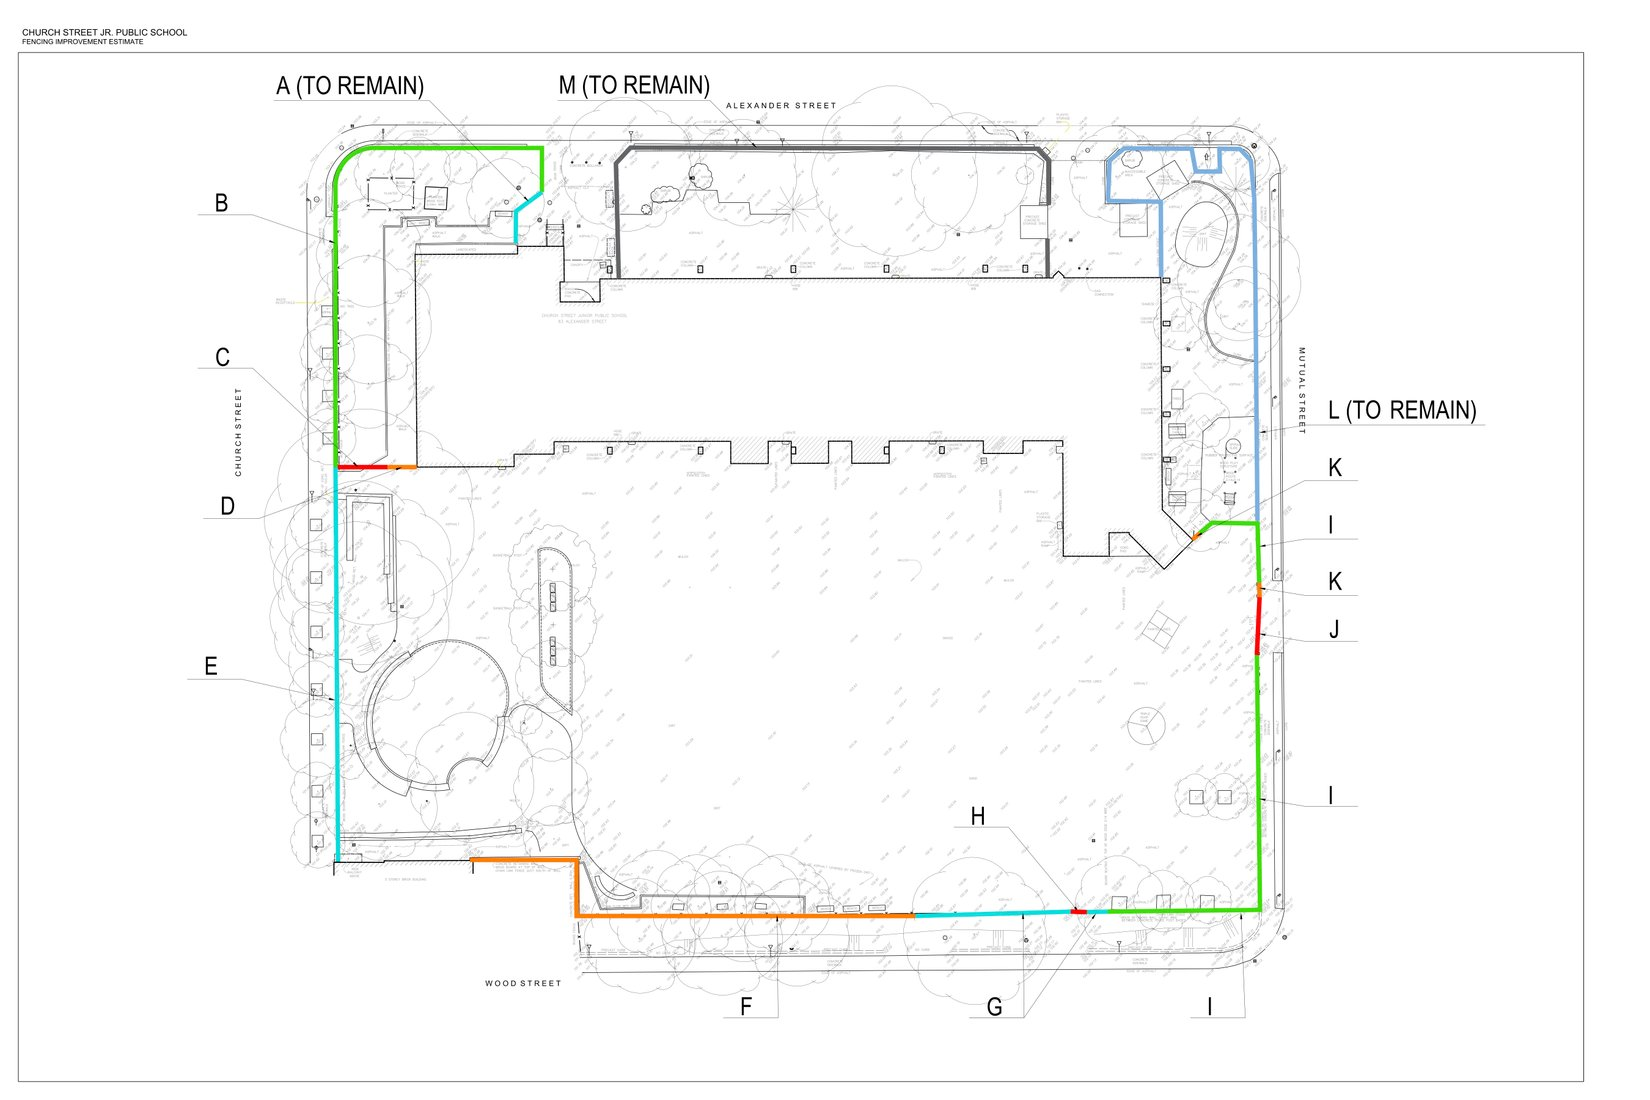 Fence project aerial view site plan